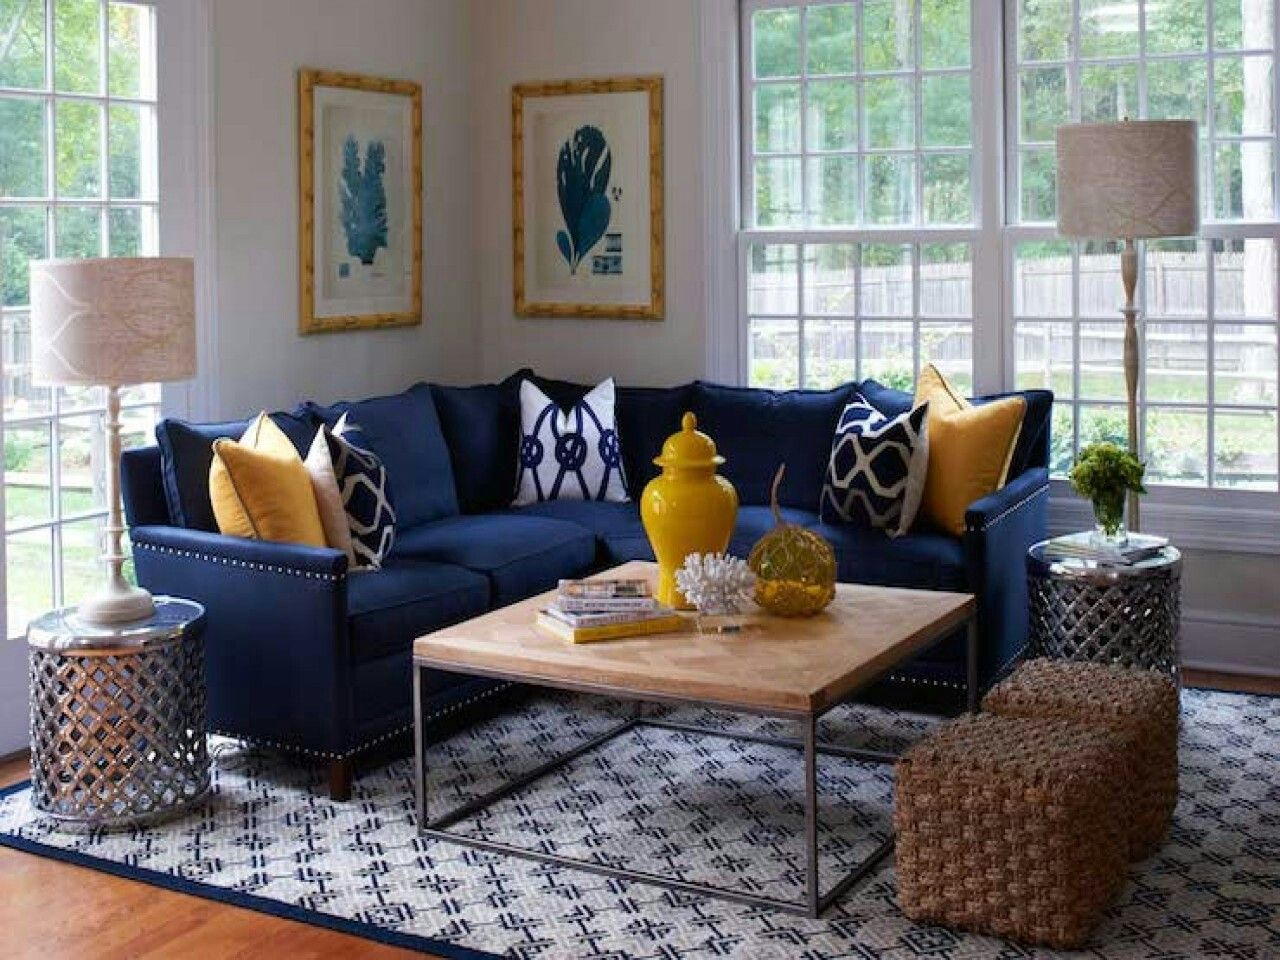 Image Result For Gray Navy Yellow Living Room Blue Living Room Decor Blue Sofas Living Room Blue And Yellow Living Room